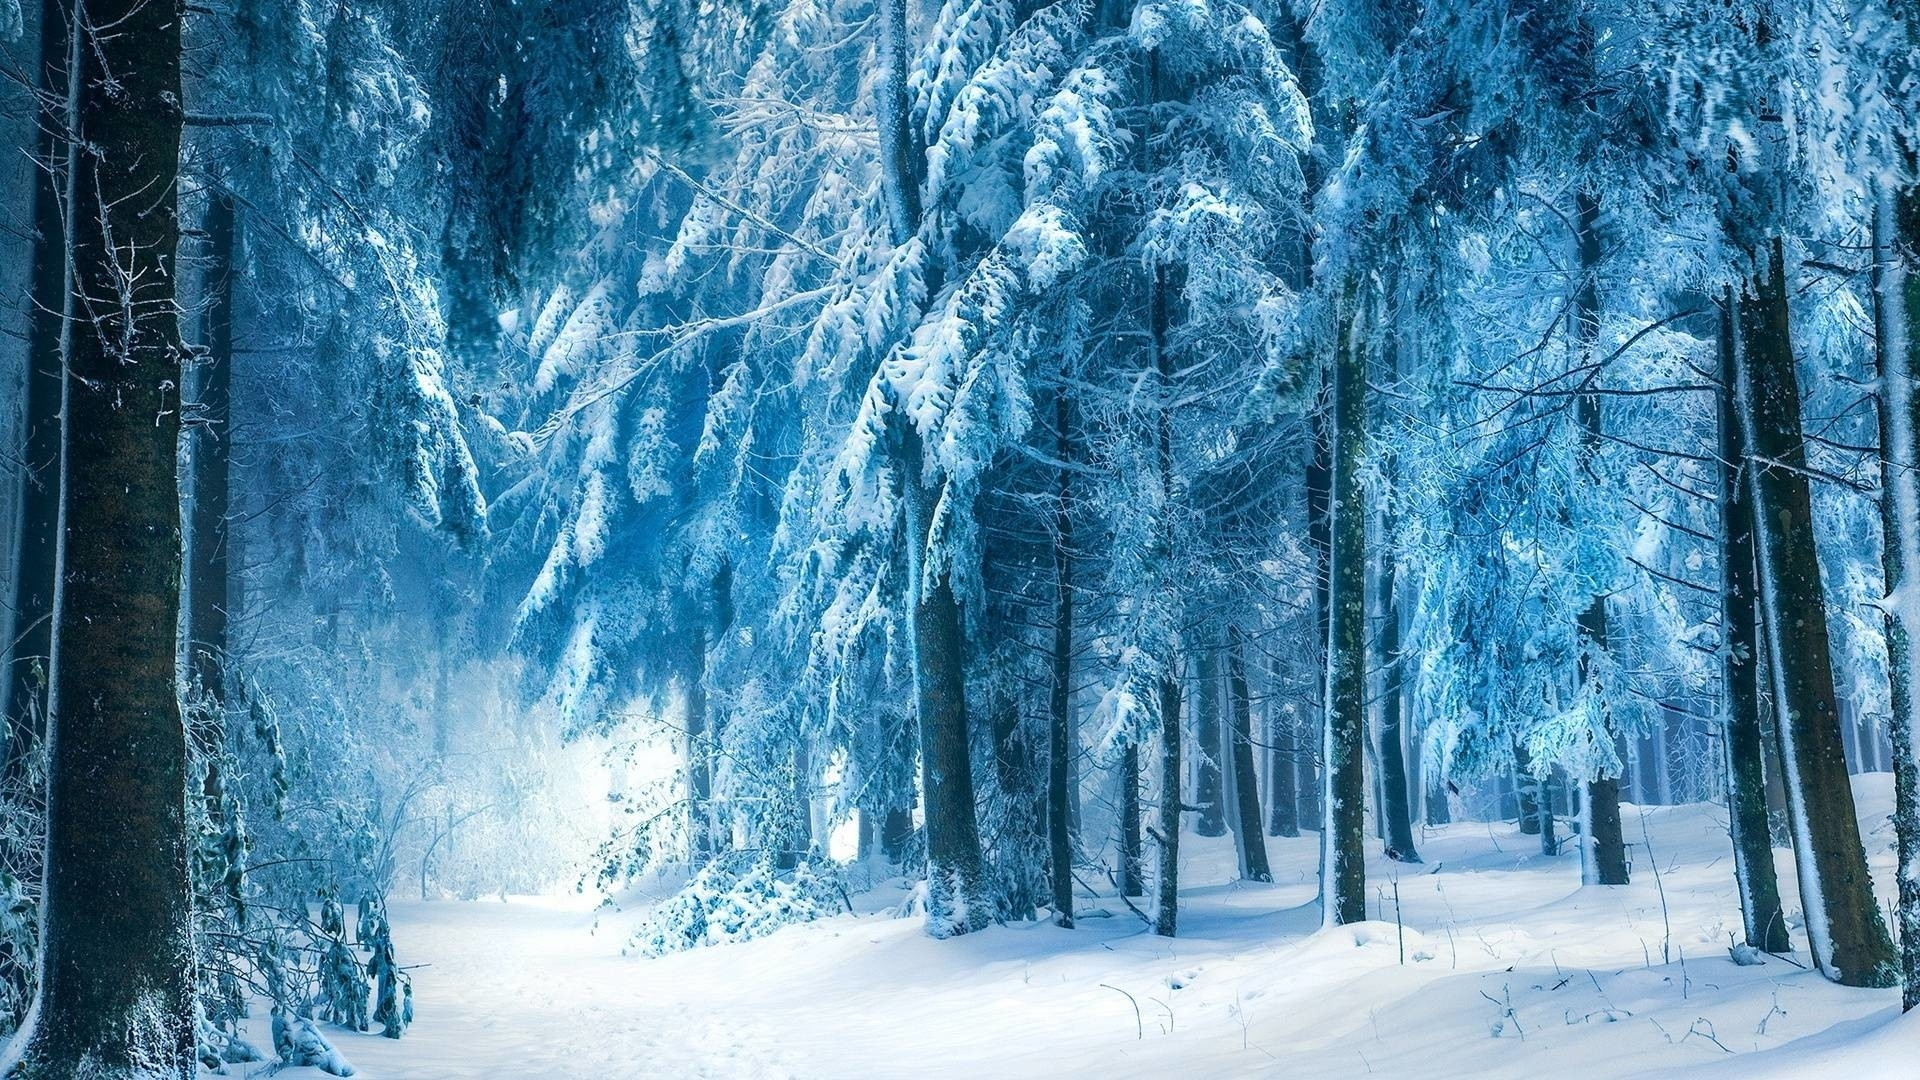 snowy dark forest wallpaper ·①